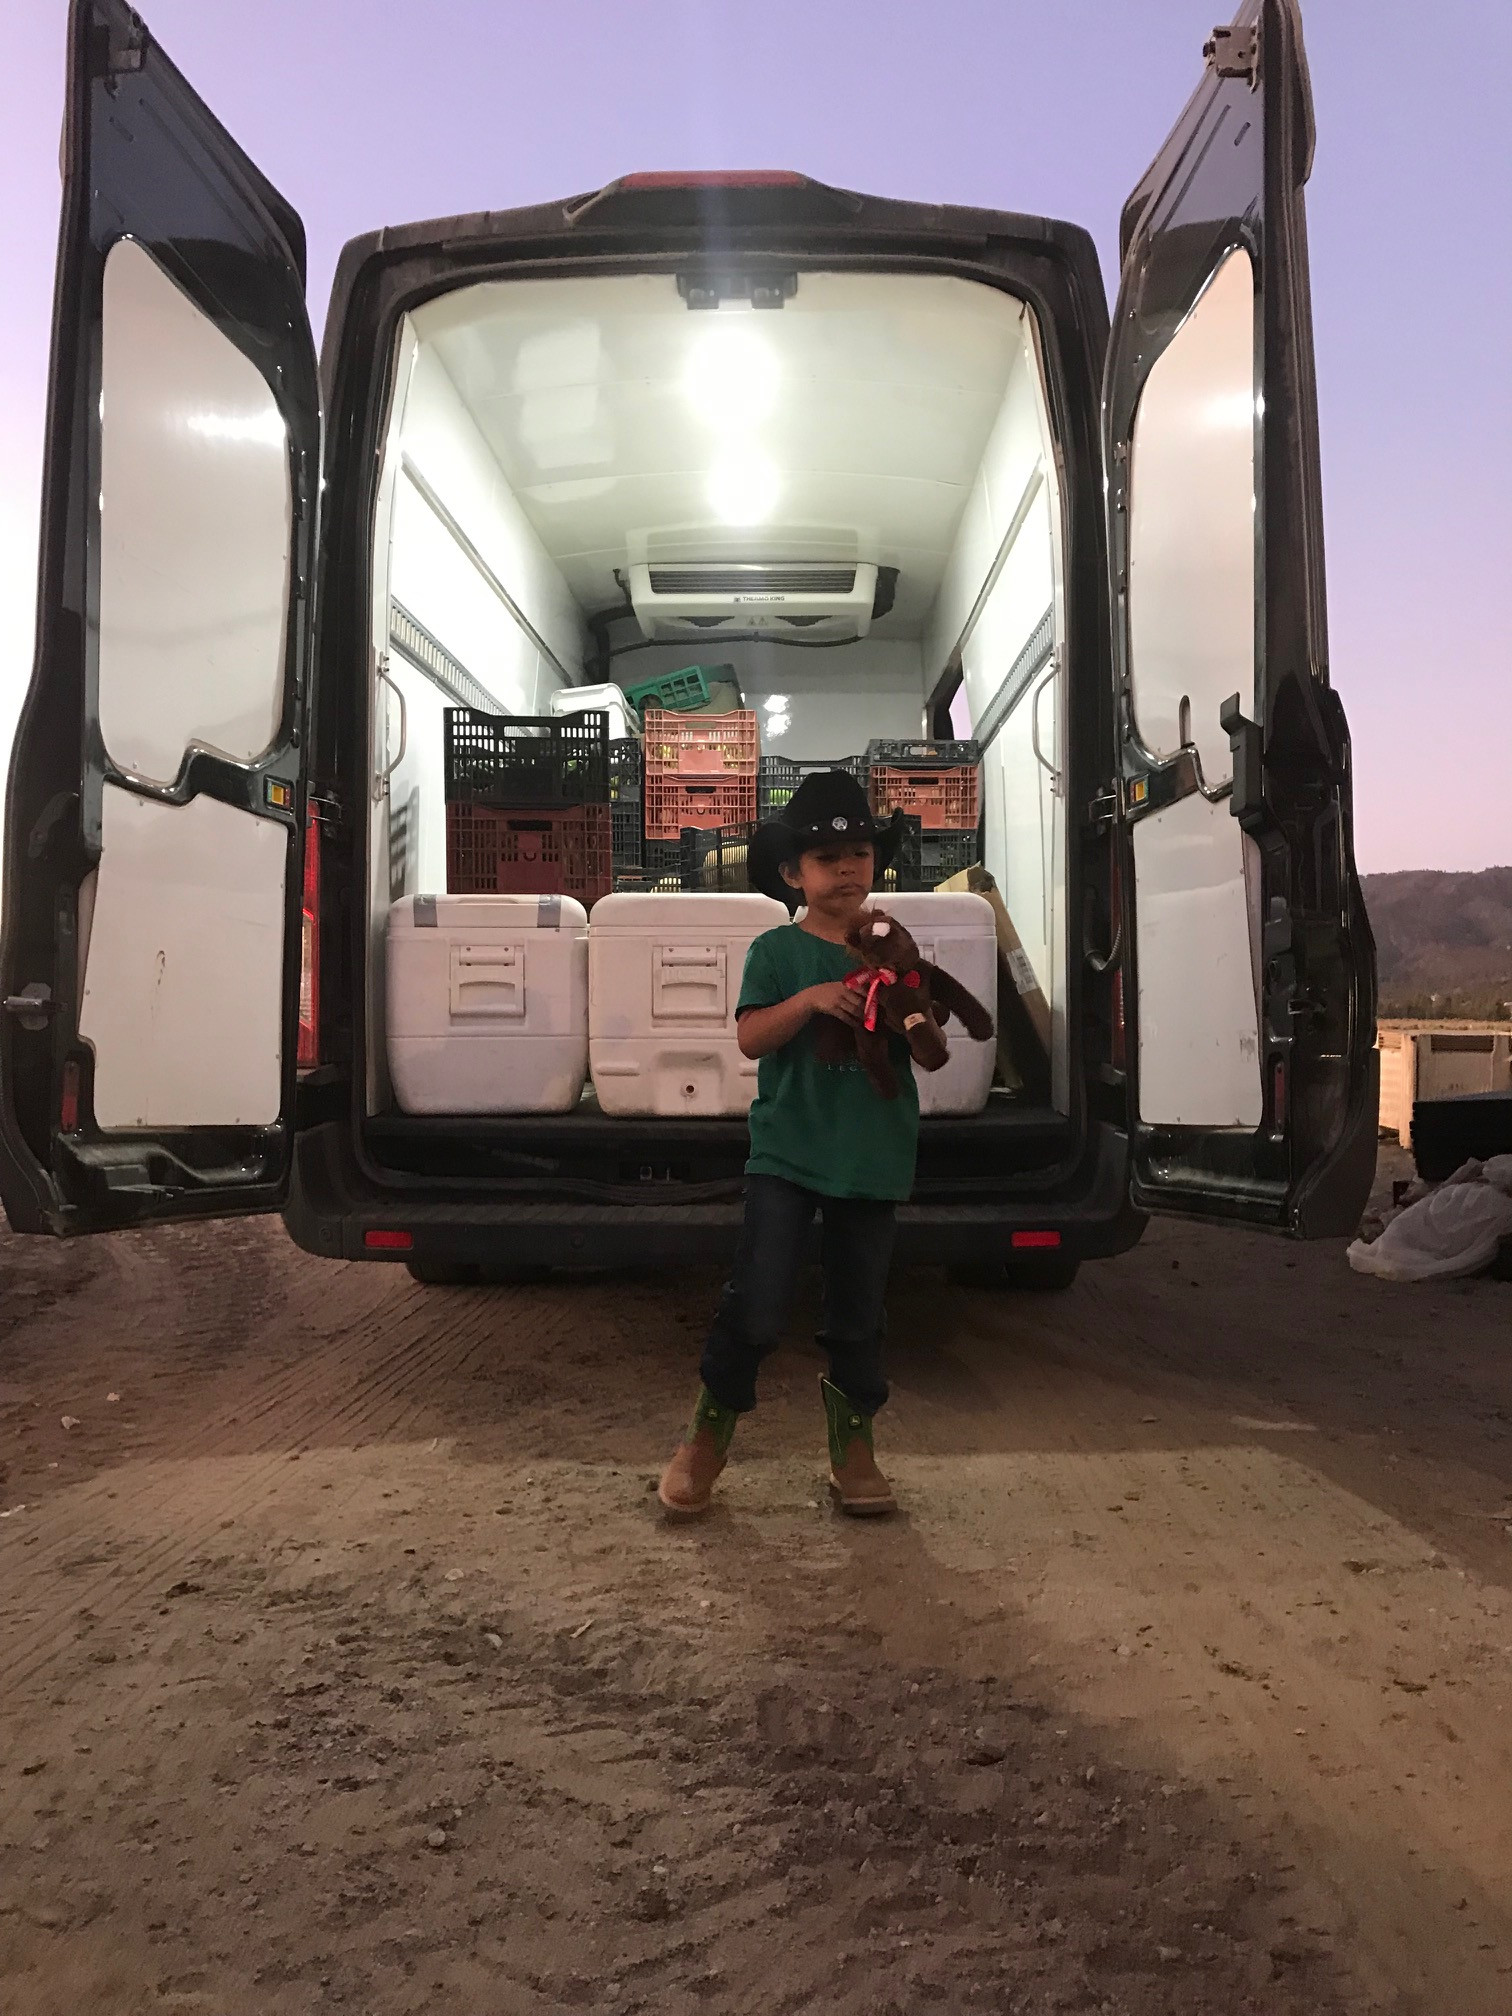 Future farmer Benji Noble loading up for the market! See you there!